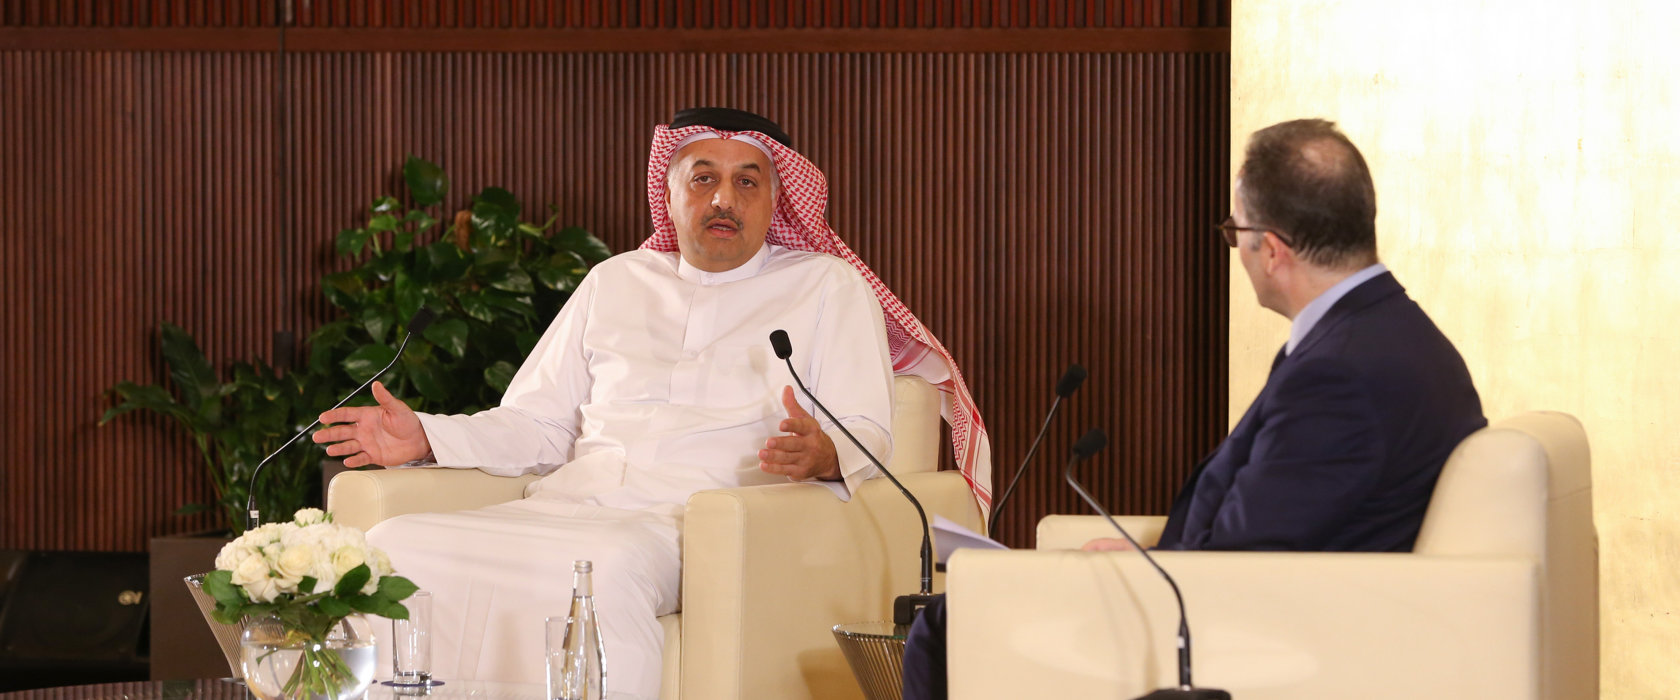 HE Dr. Khalid bin Mohamed Al Attiyah hails Qatar's '1,000-day victory' over blockade at QF talk